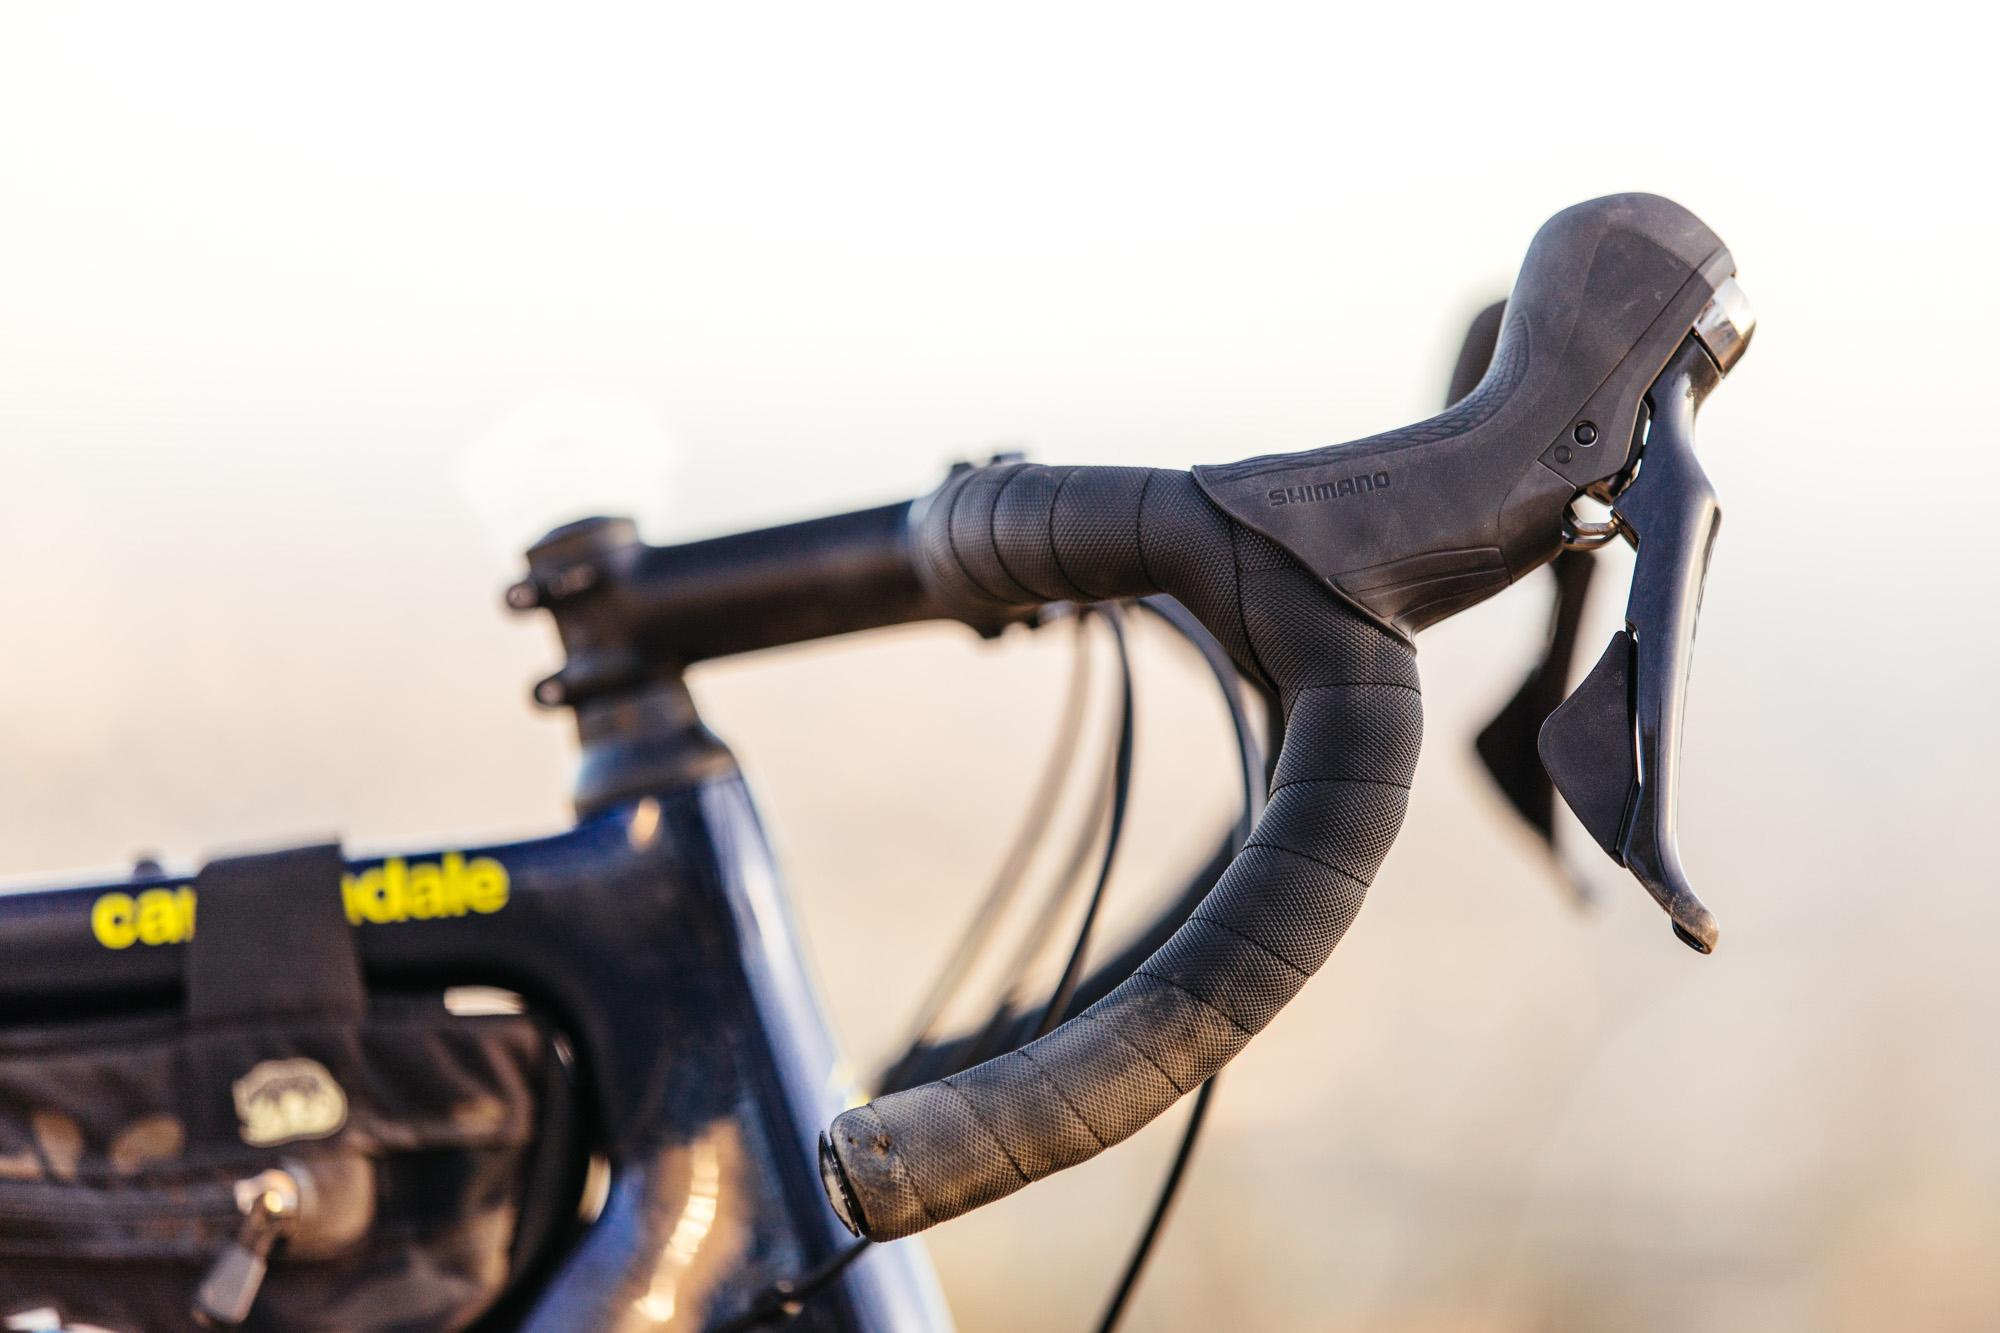 The Cannondale Carbon Topstone